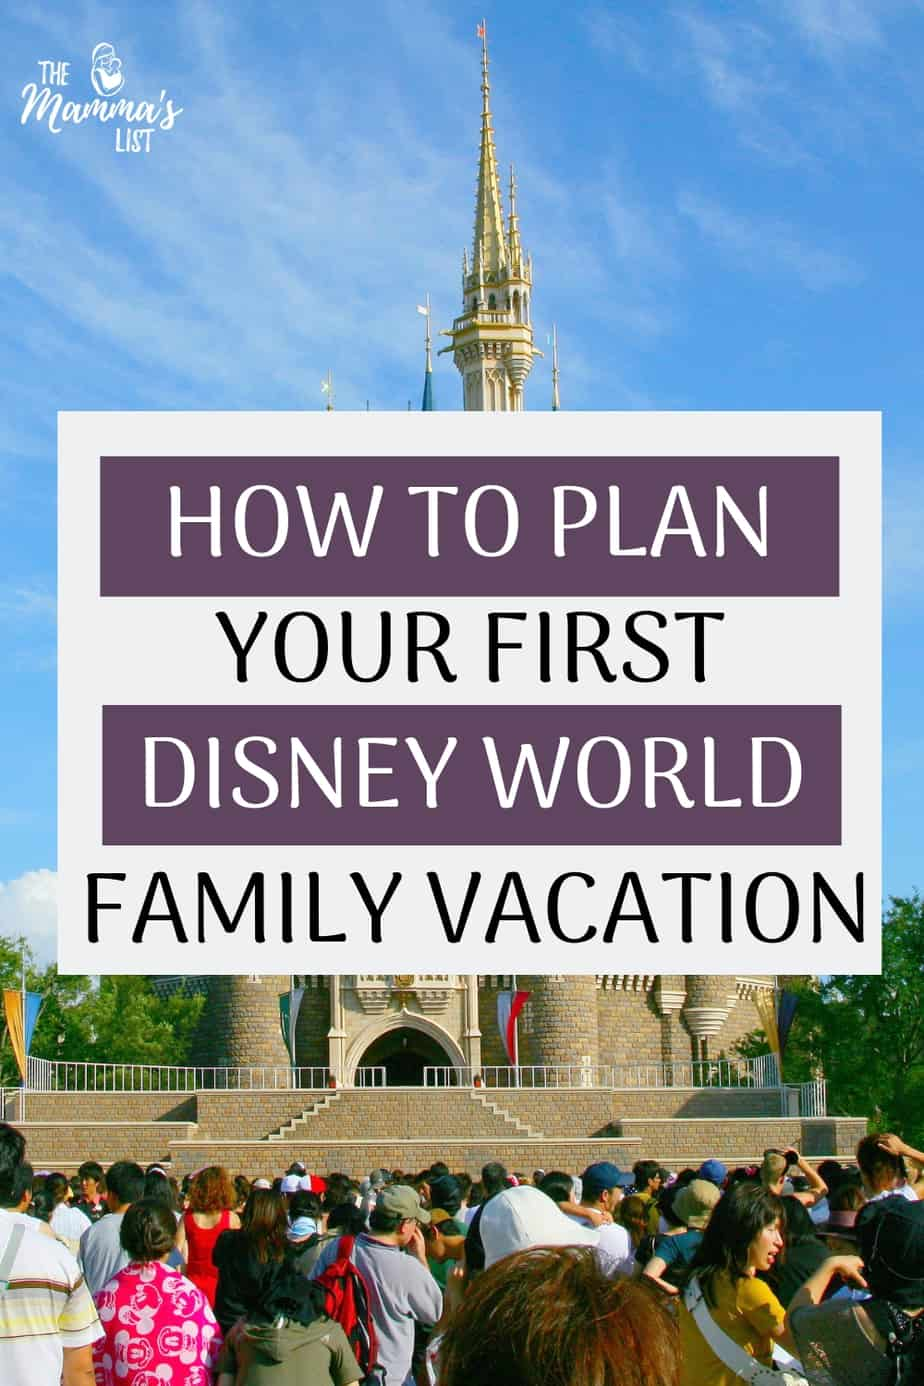 Everything you ever wanted to know about planning a Disney vacation with a toddler. From times to go, to Disney itneraries with toddlers, to hotels on property and off property and how to use your Fast Passes. If you're planning a trip to Disney World with your toddler, check out these tips and resources.